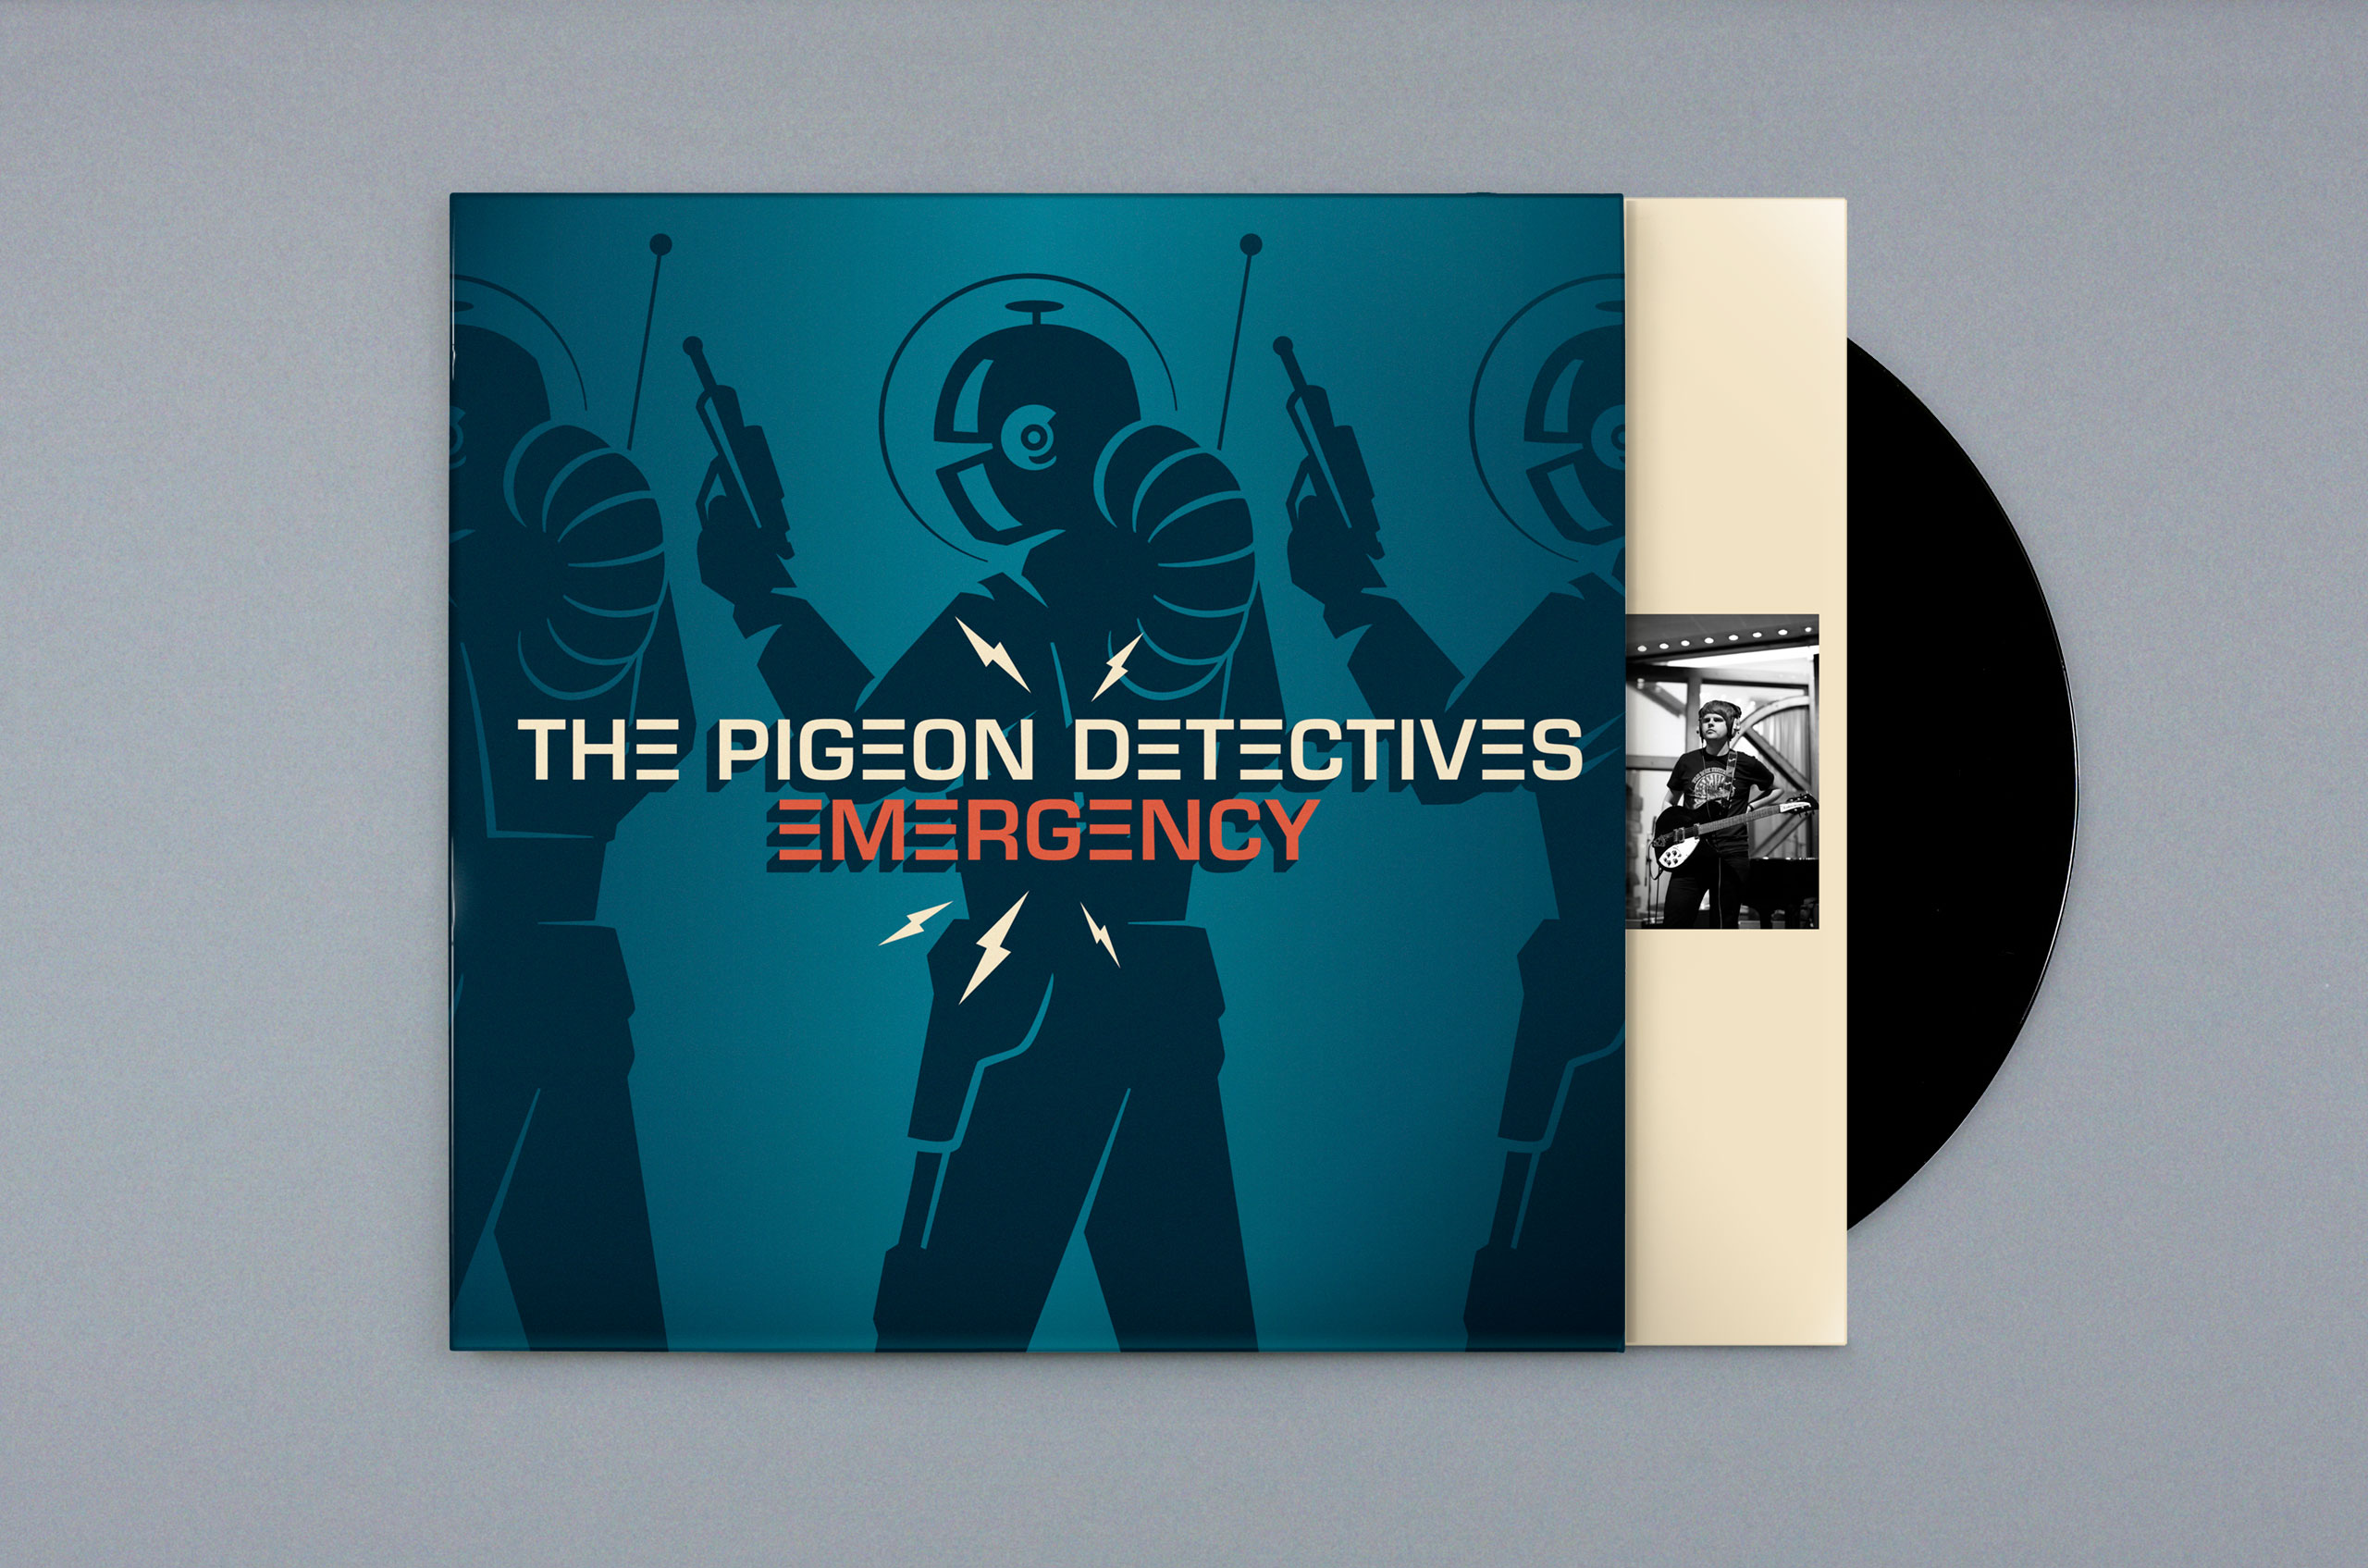 Emergency - The Pigeon Detectives Album Cover by Dan Forster